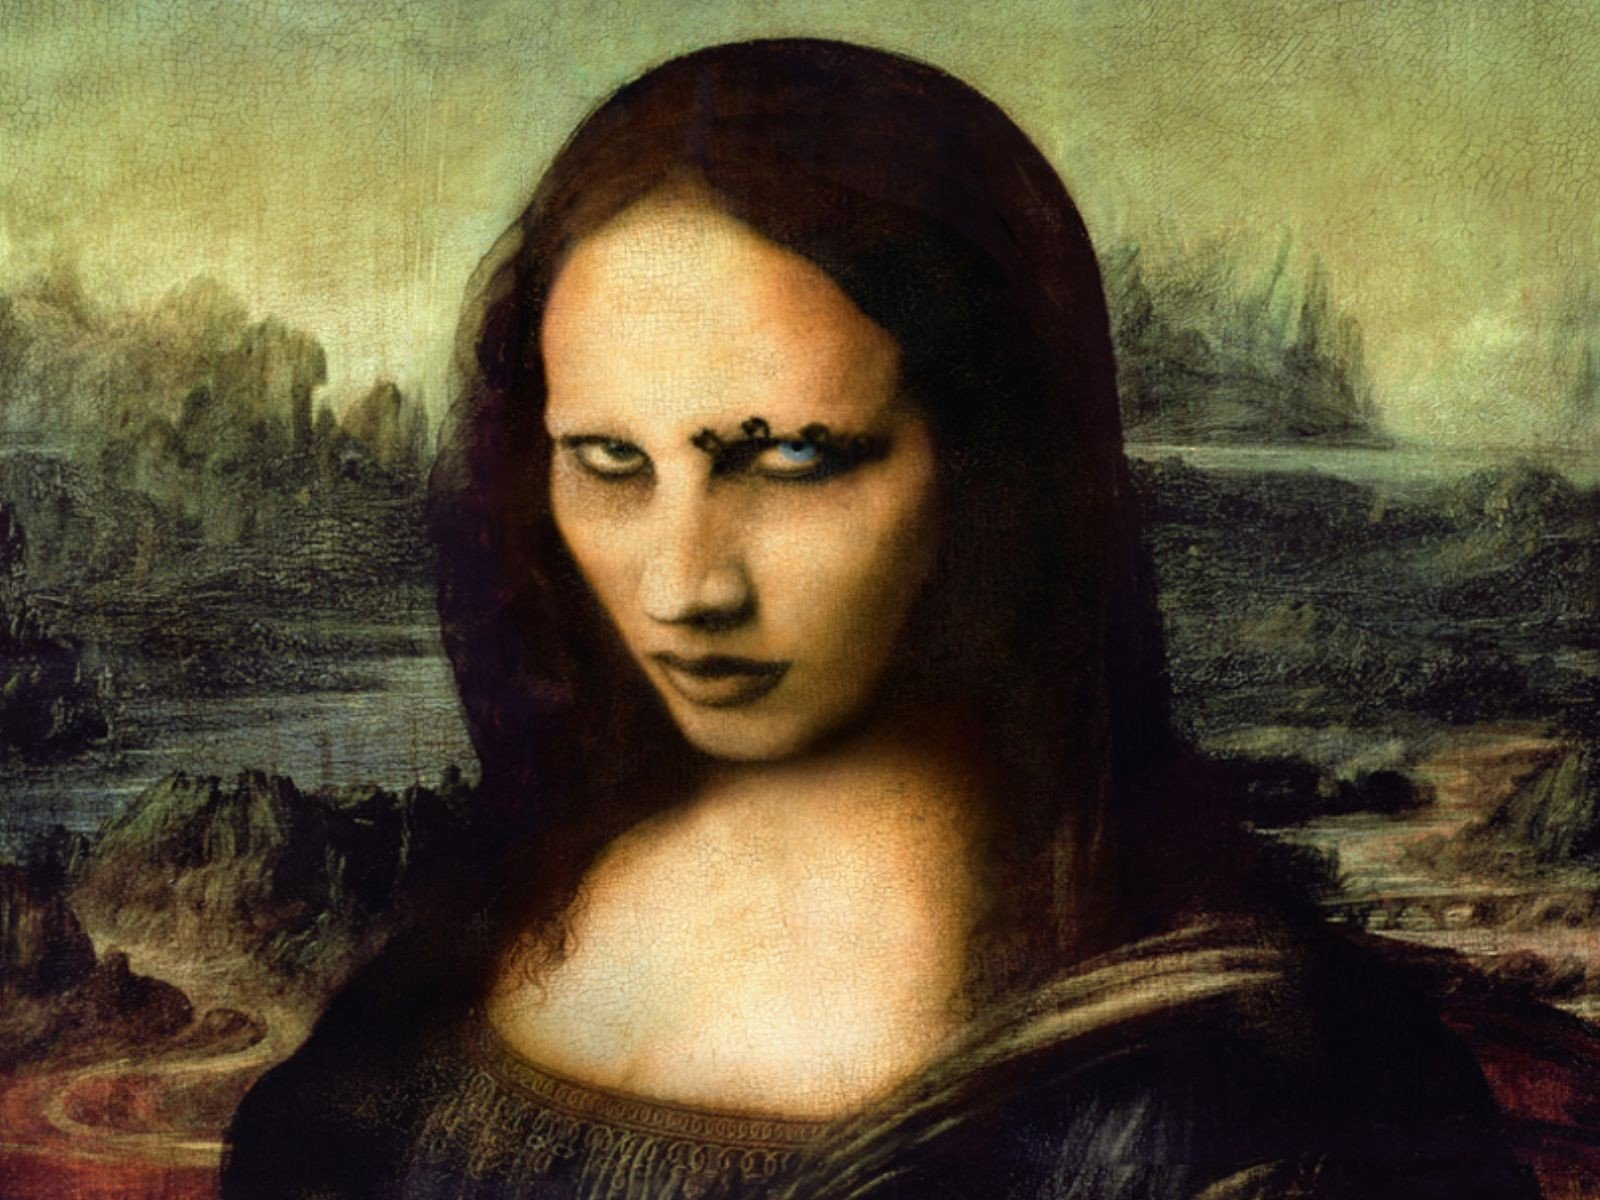 Mona Lisa Scary Mona lisa wallpaper 1600x1200 1600x1200